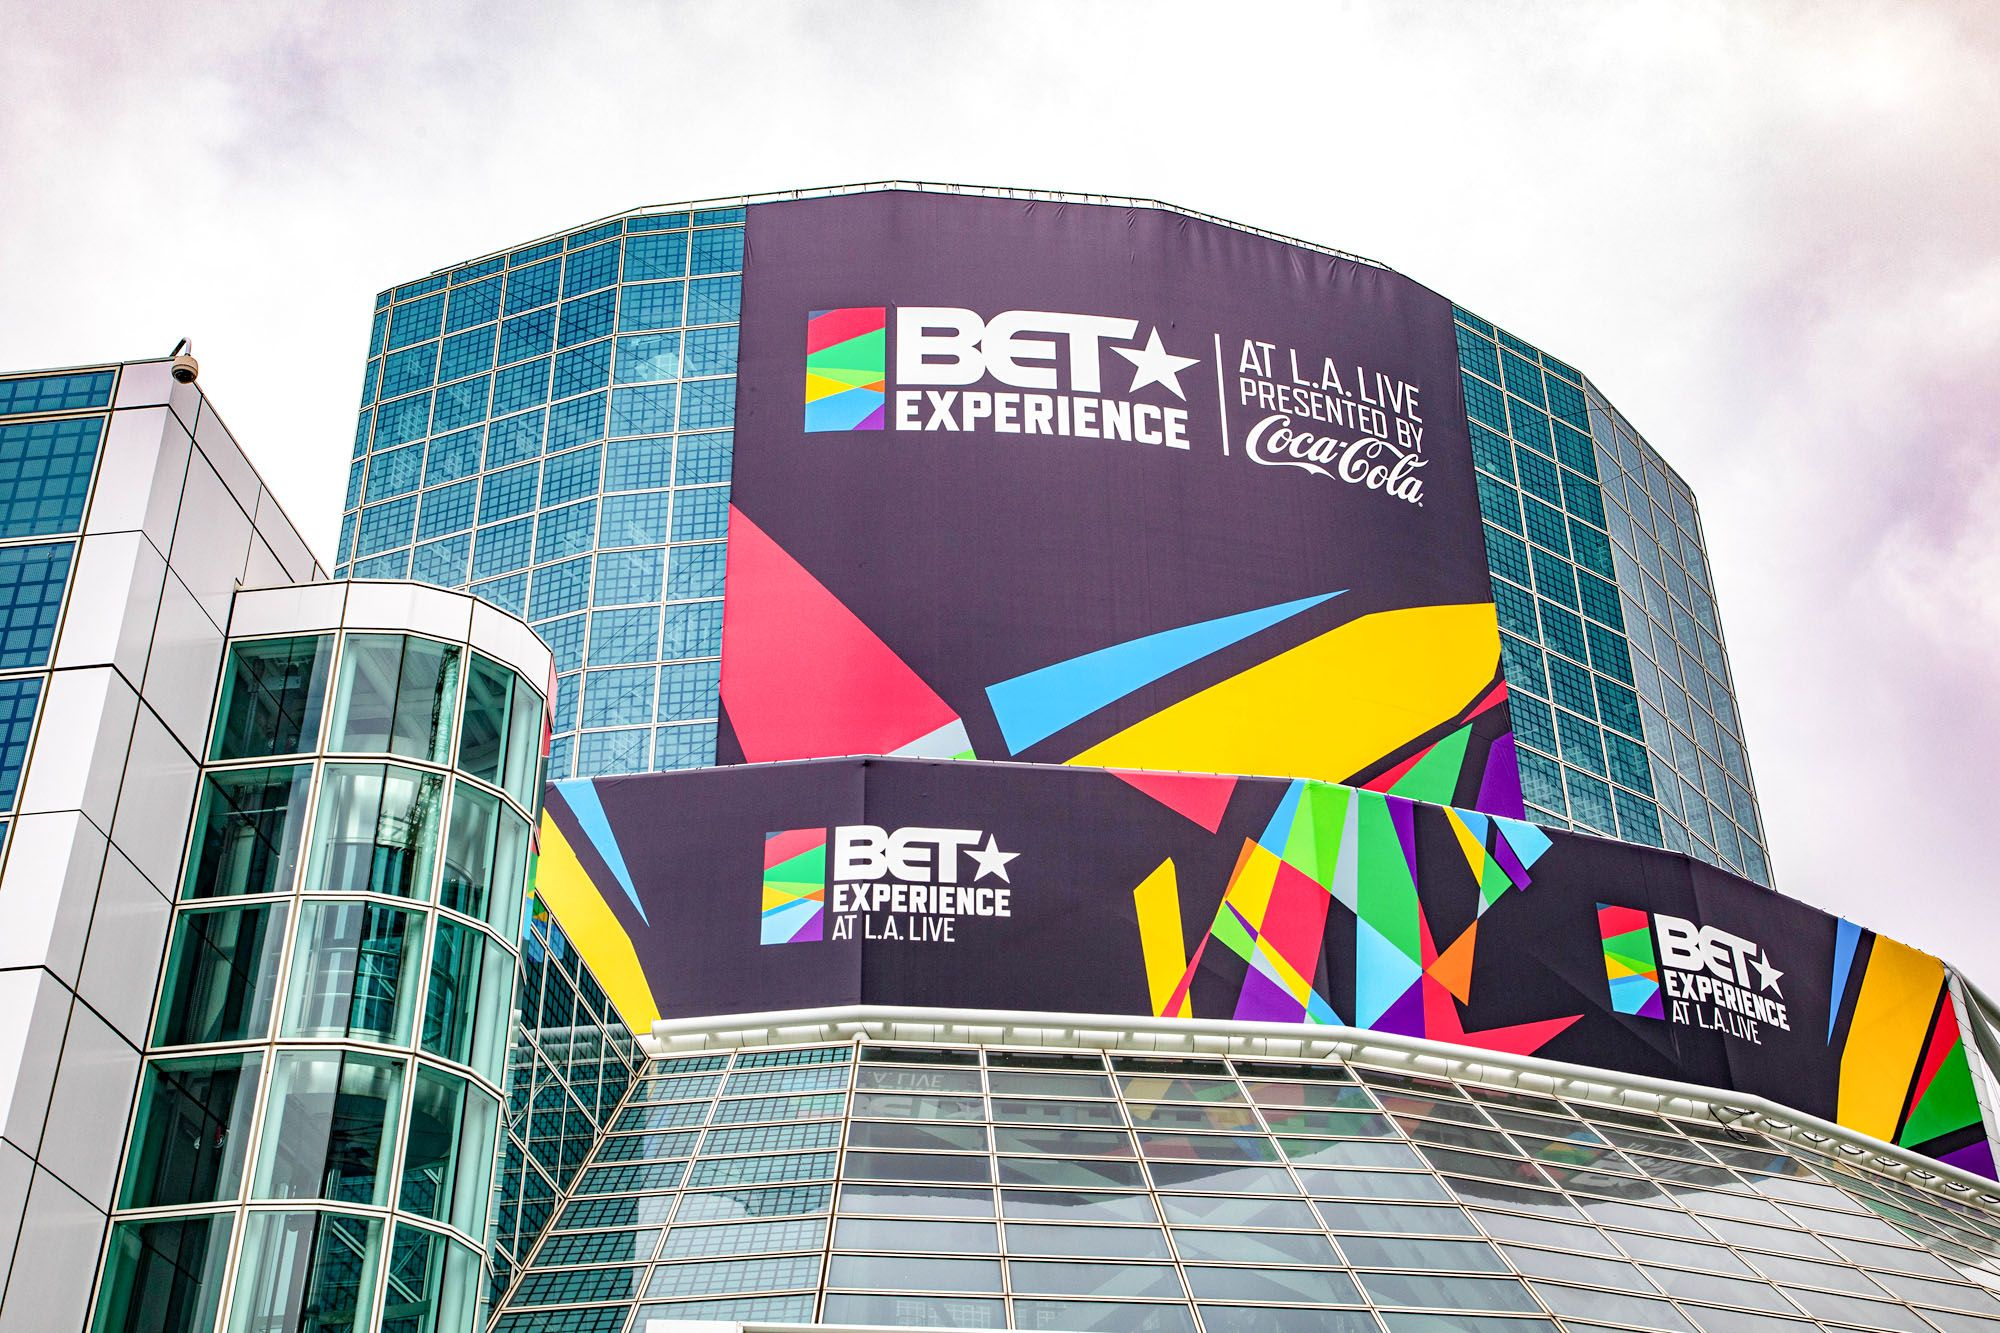 BET Experience at LA LIVE Showcase Image